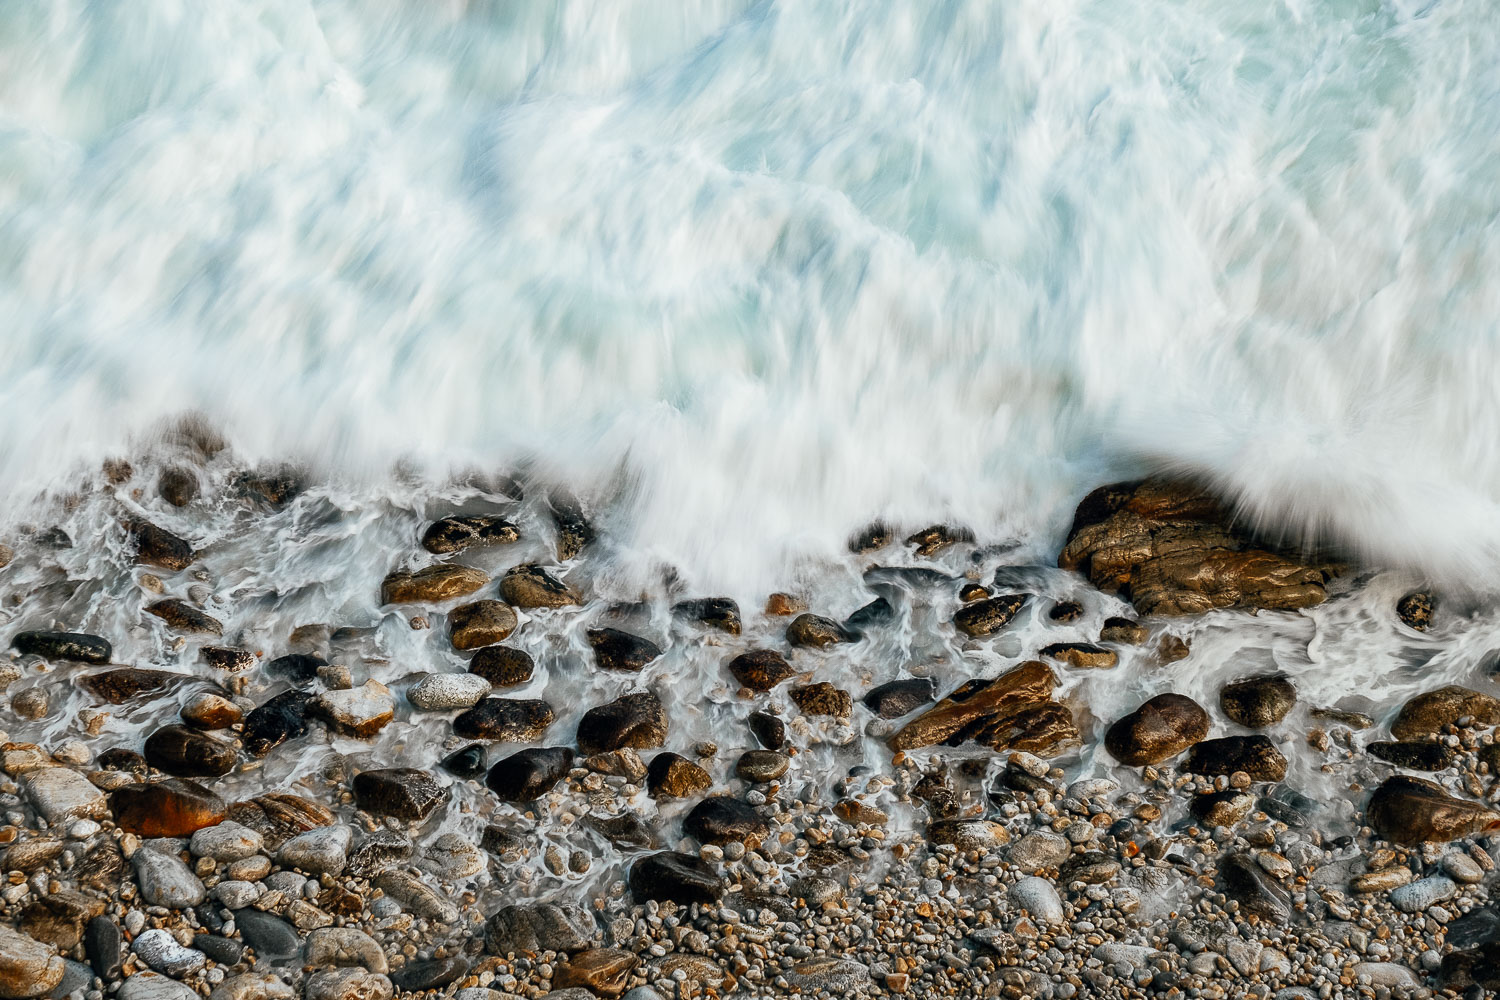 crashing-waves-east-sea-Edit.jpg